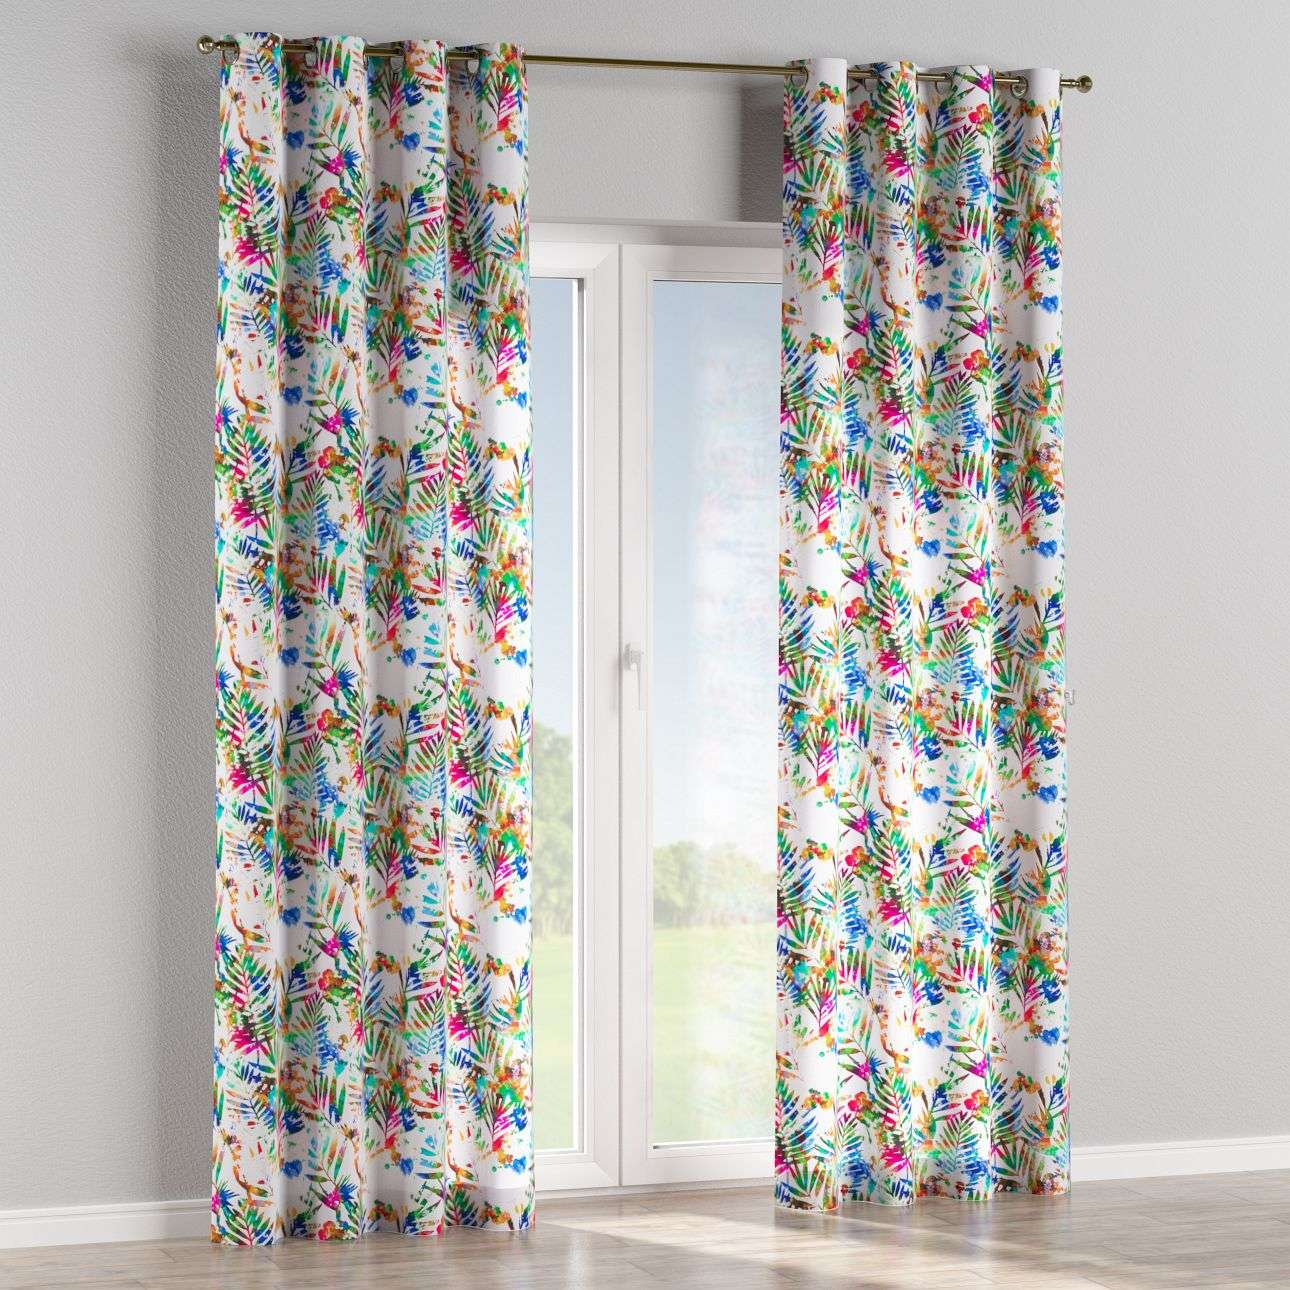 Eyelet curtains in collection New Art, fabric: 140-22